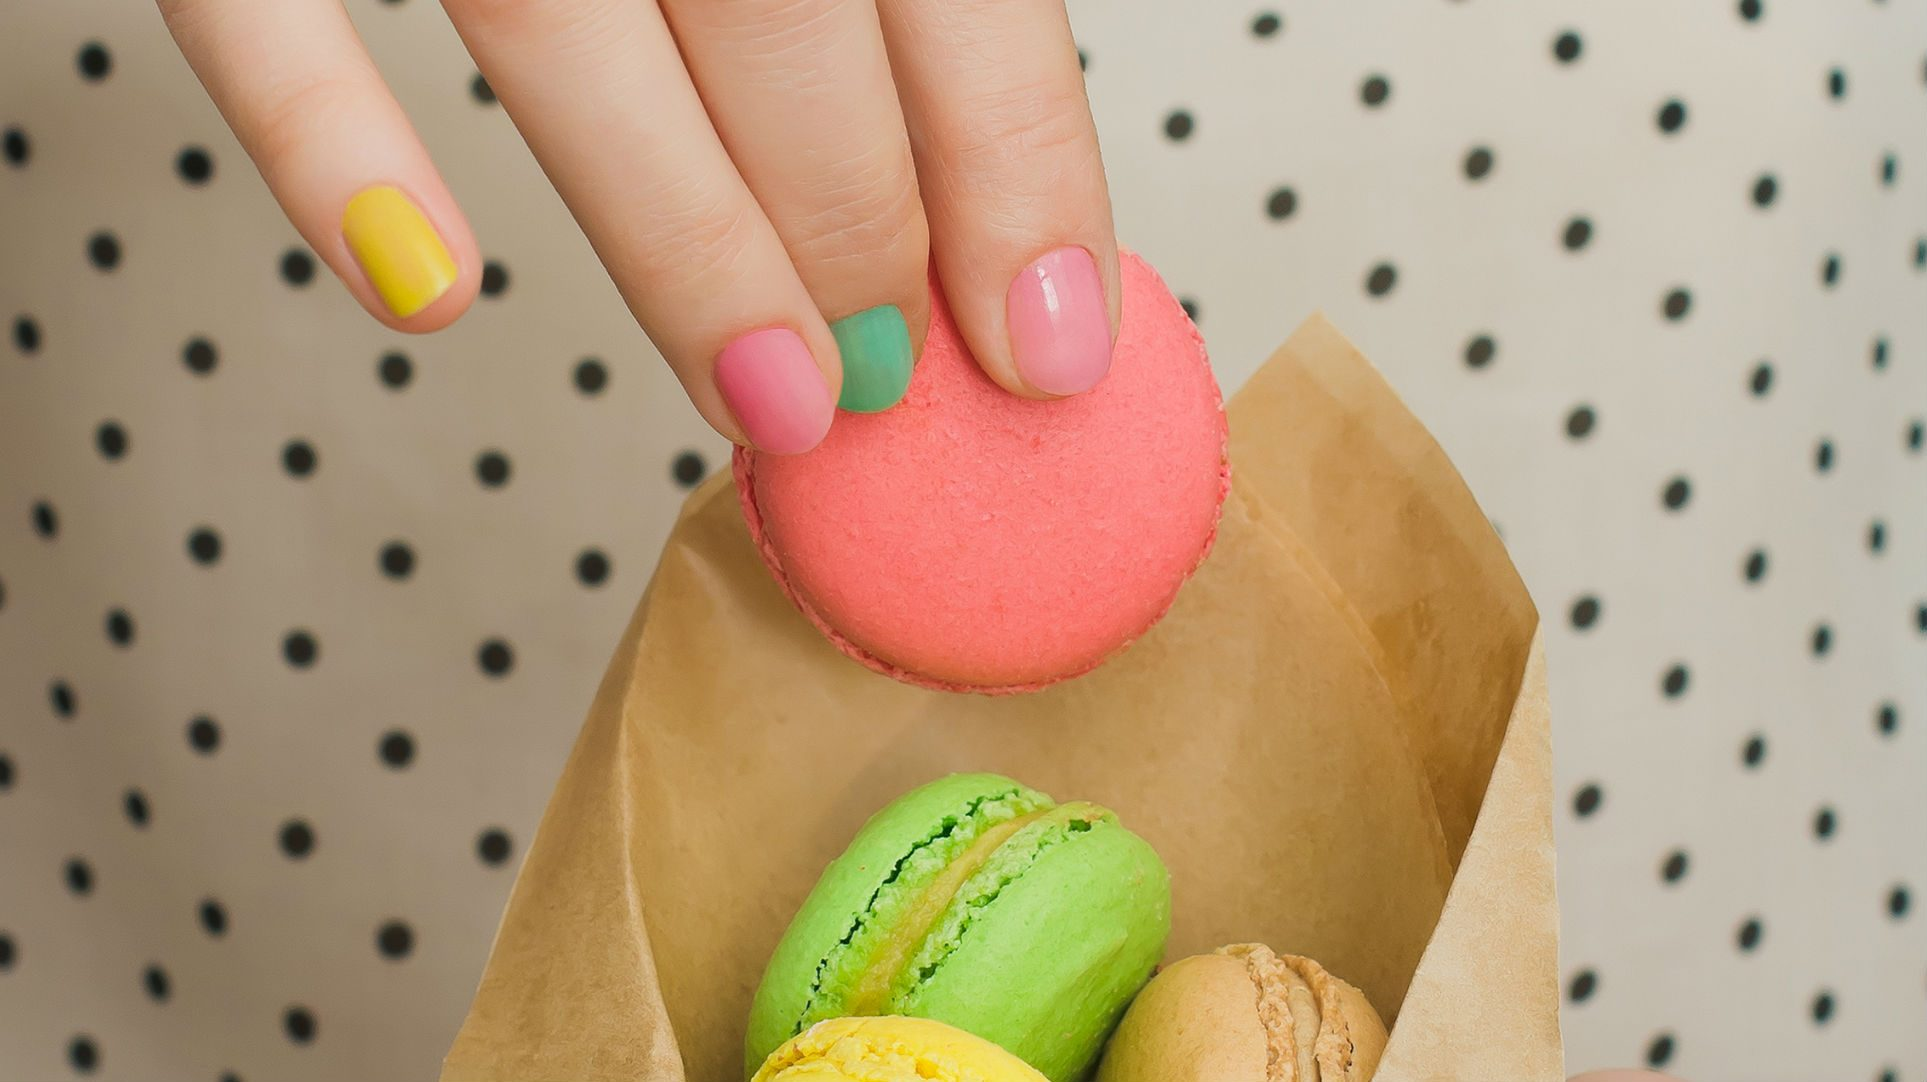 cheat meals good, a woman holding macarons